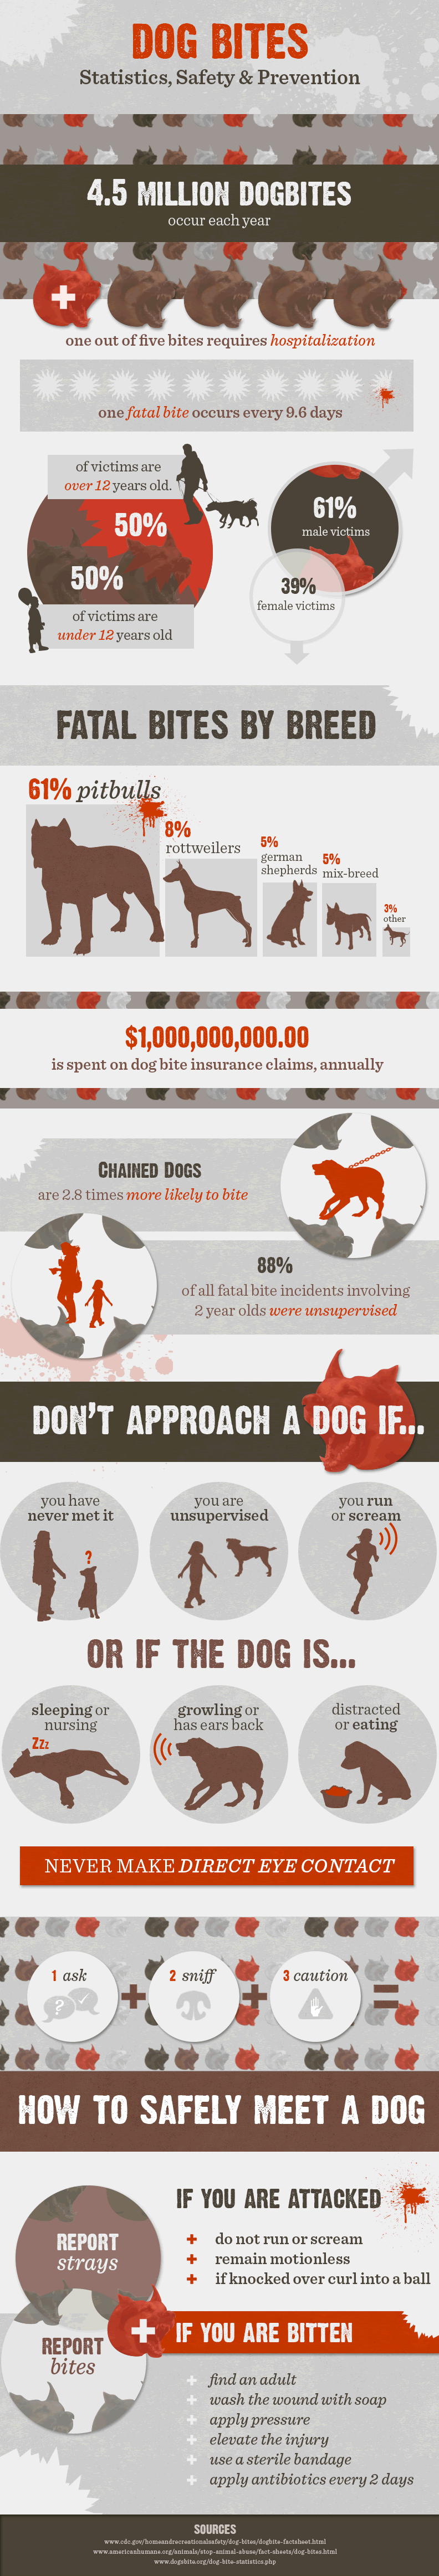 dog-bite-facts-and-prevention